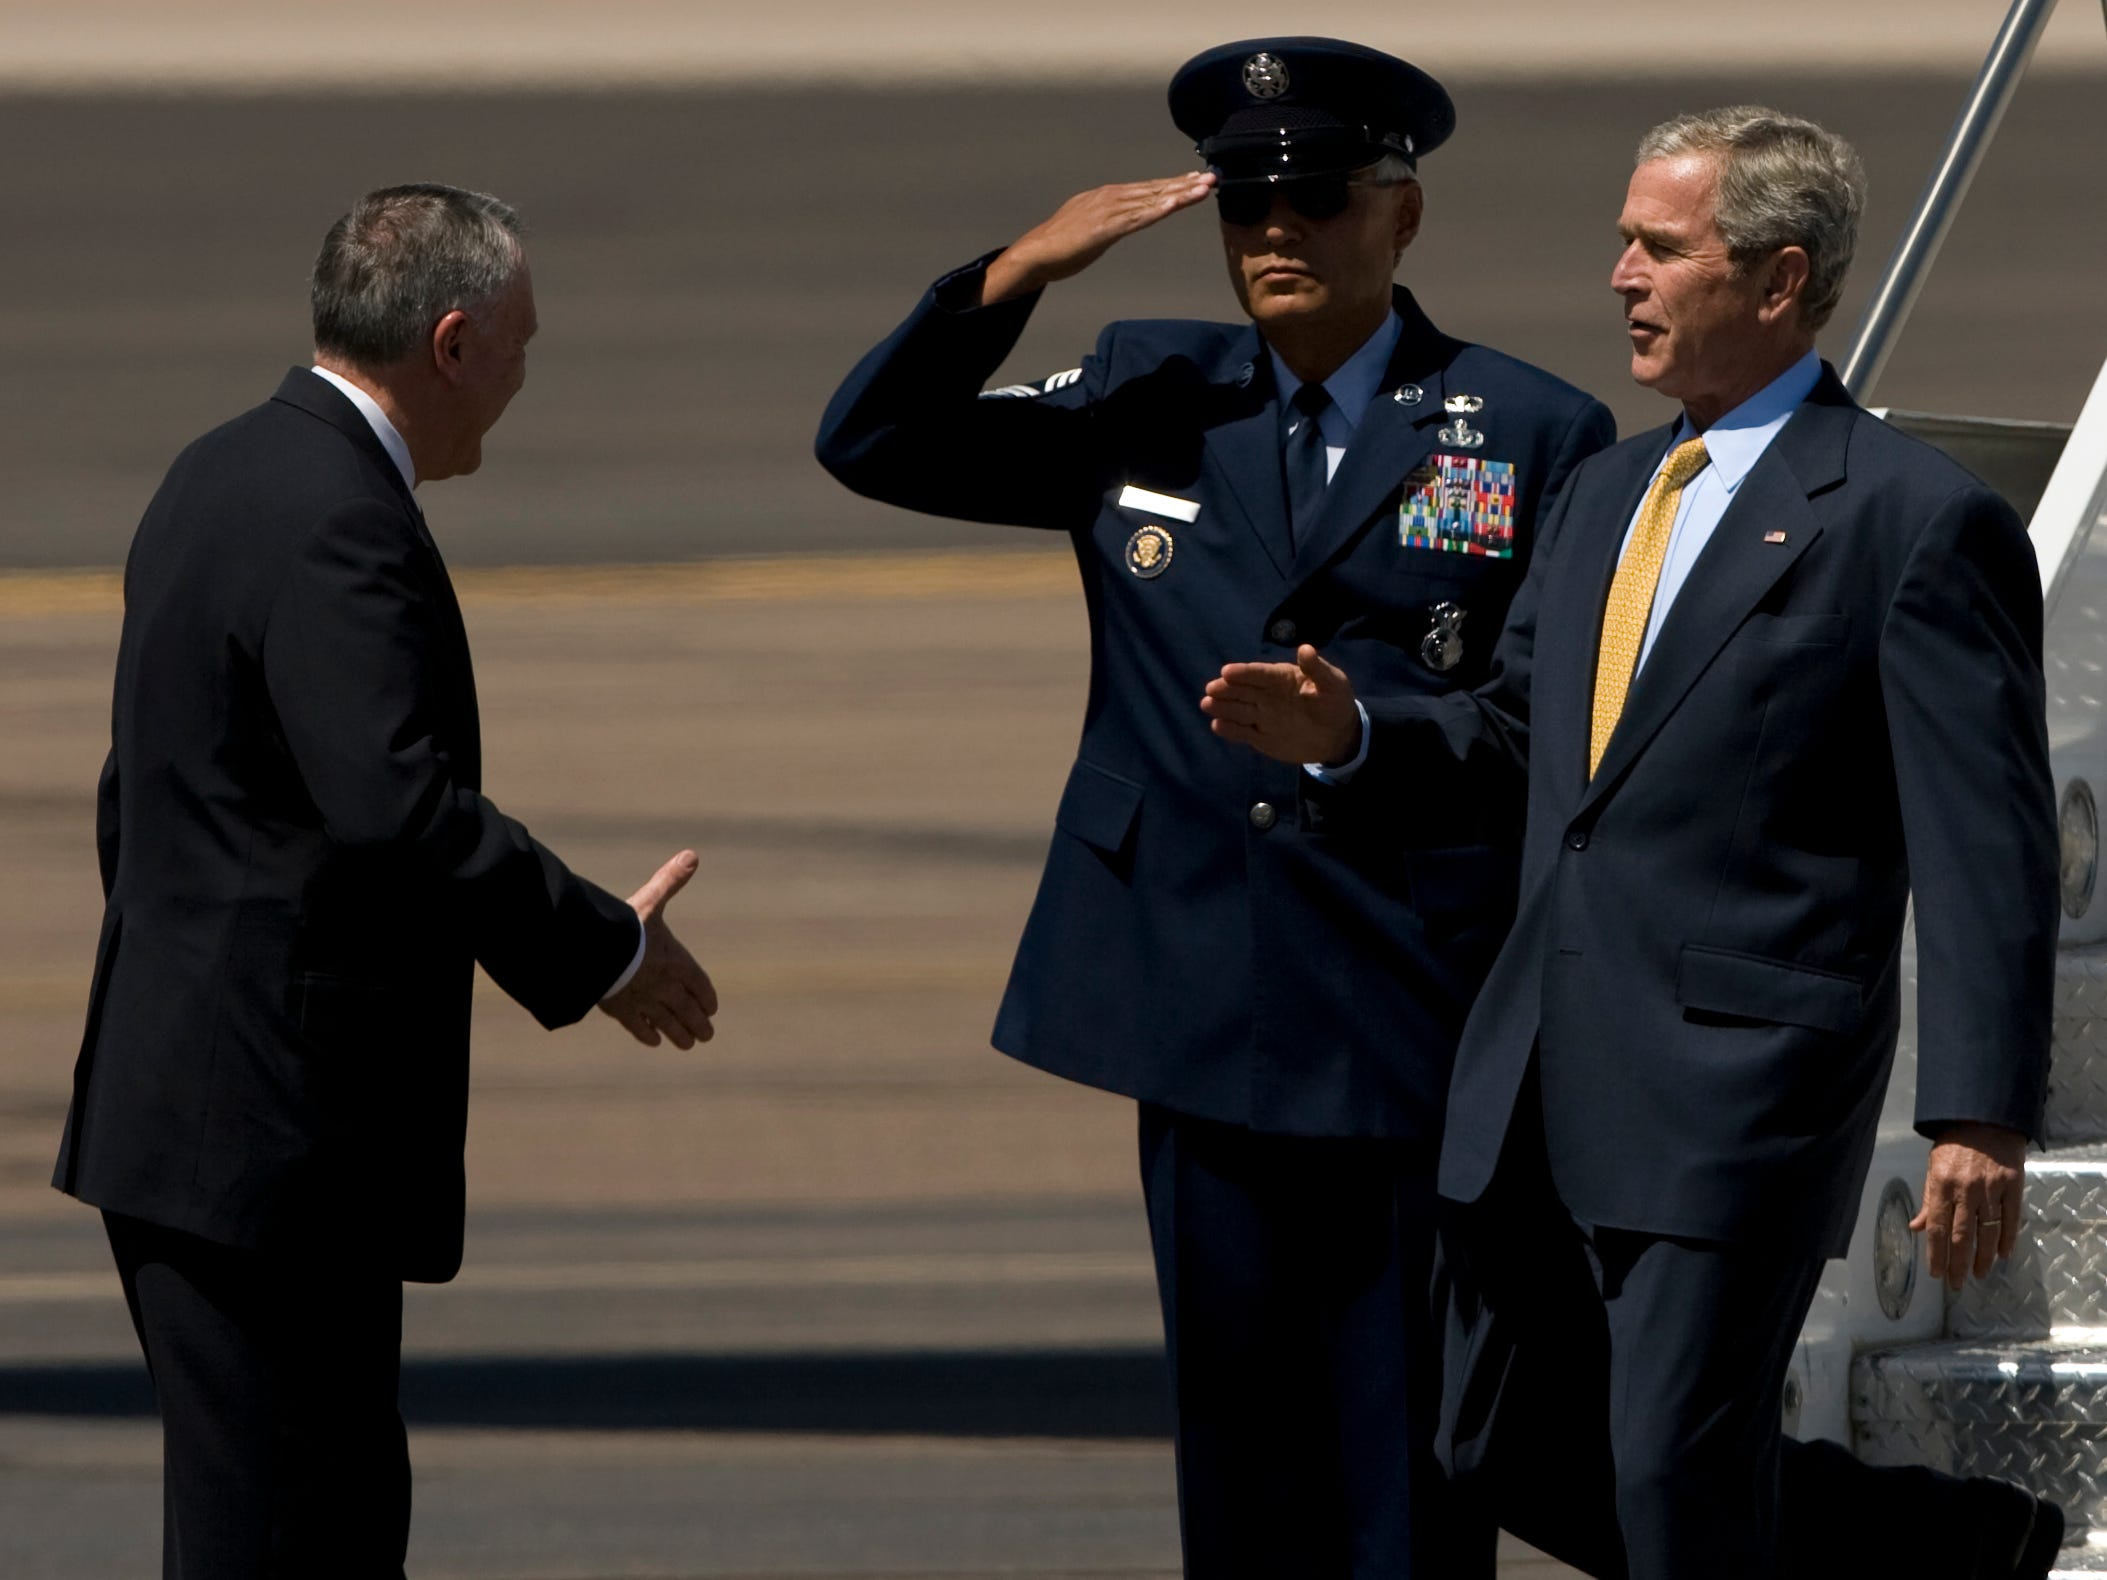 President George W. Bush goes to shake the hand of Sen. Jon Kyl after walking off of Air Force One at the Executive Terminal at Sky Harbor International Airport, May 27, 2008. Bush was in the Valley to campaign for Senator John McCain.